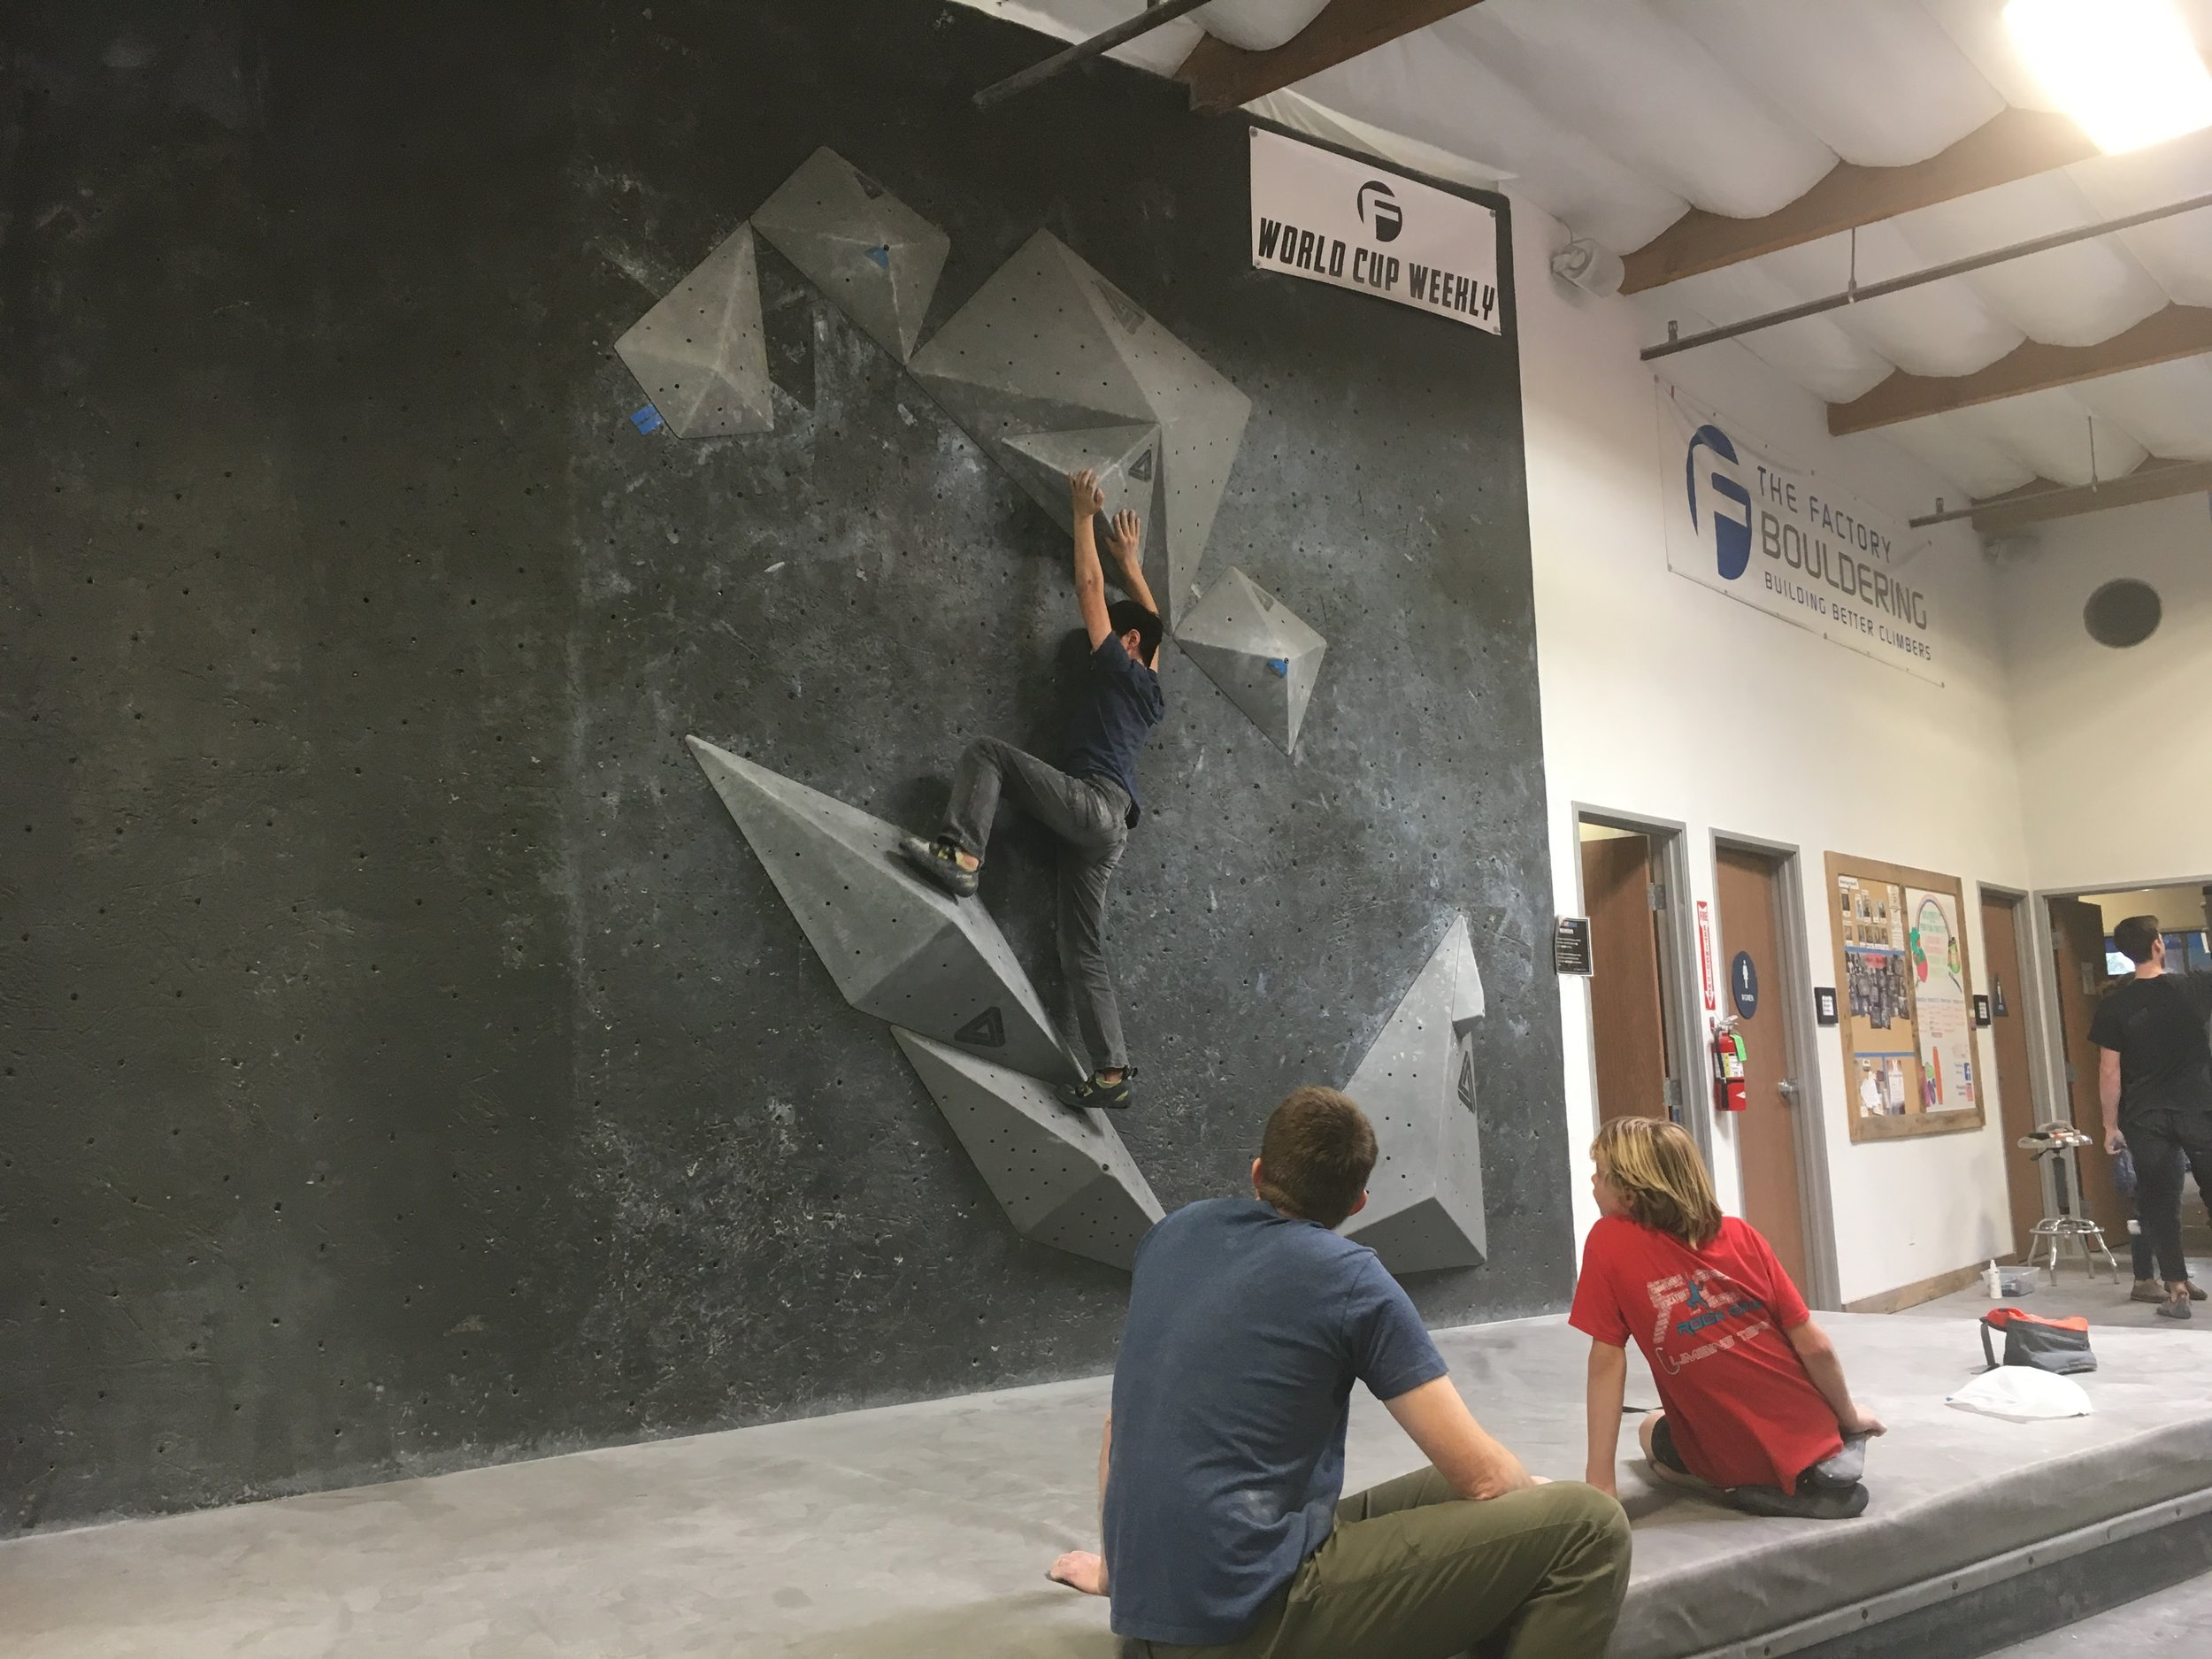 Climbing encourages problem solving with your friends.